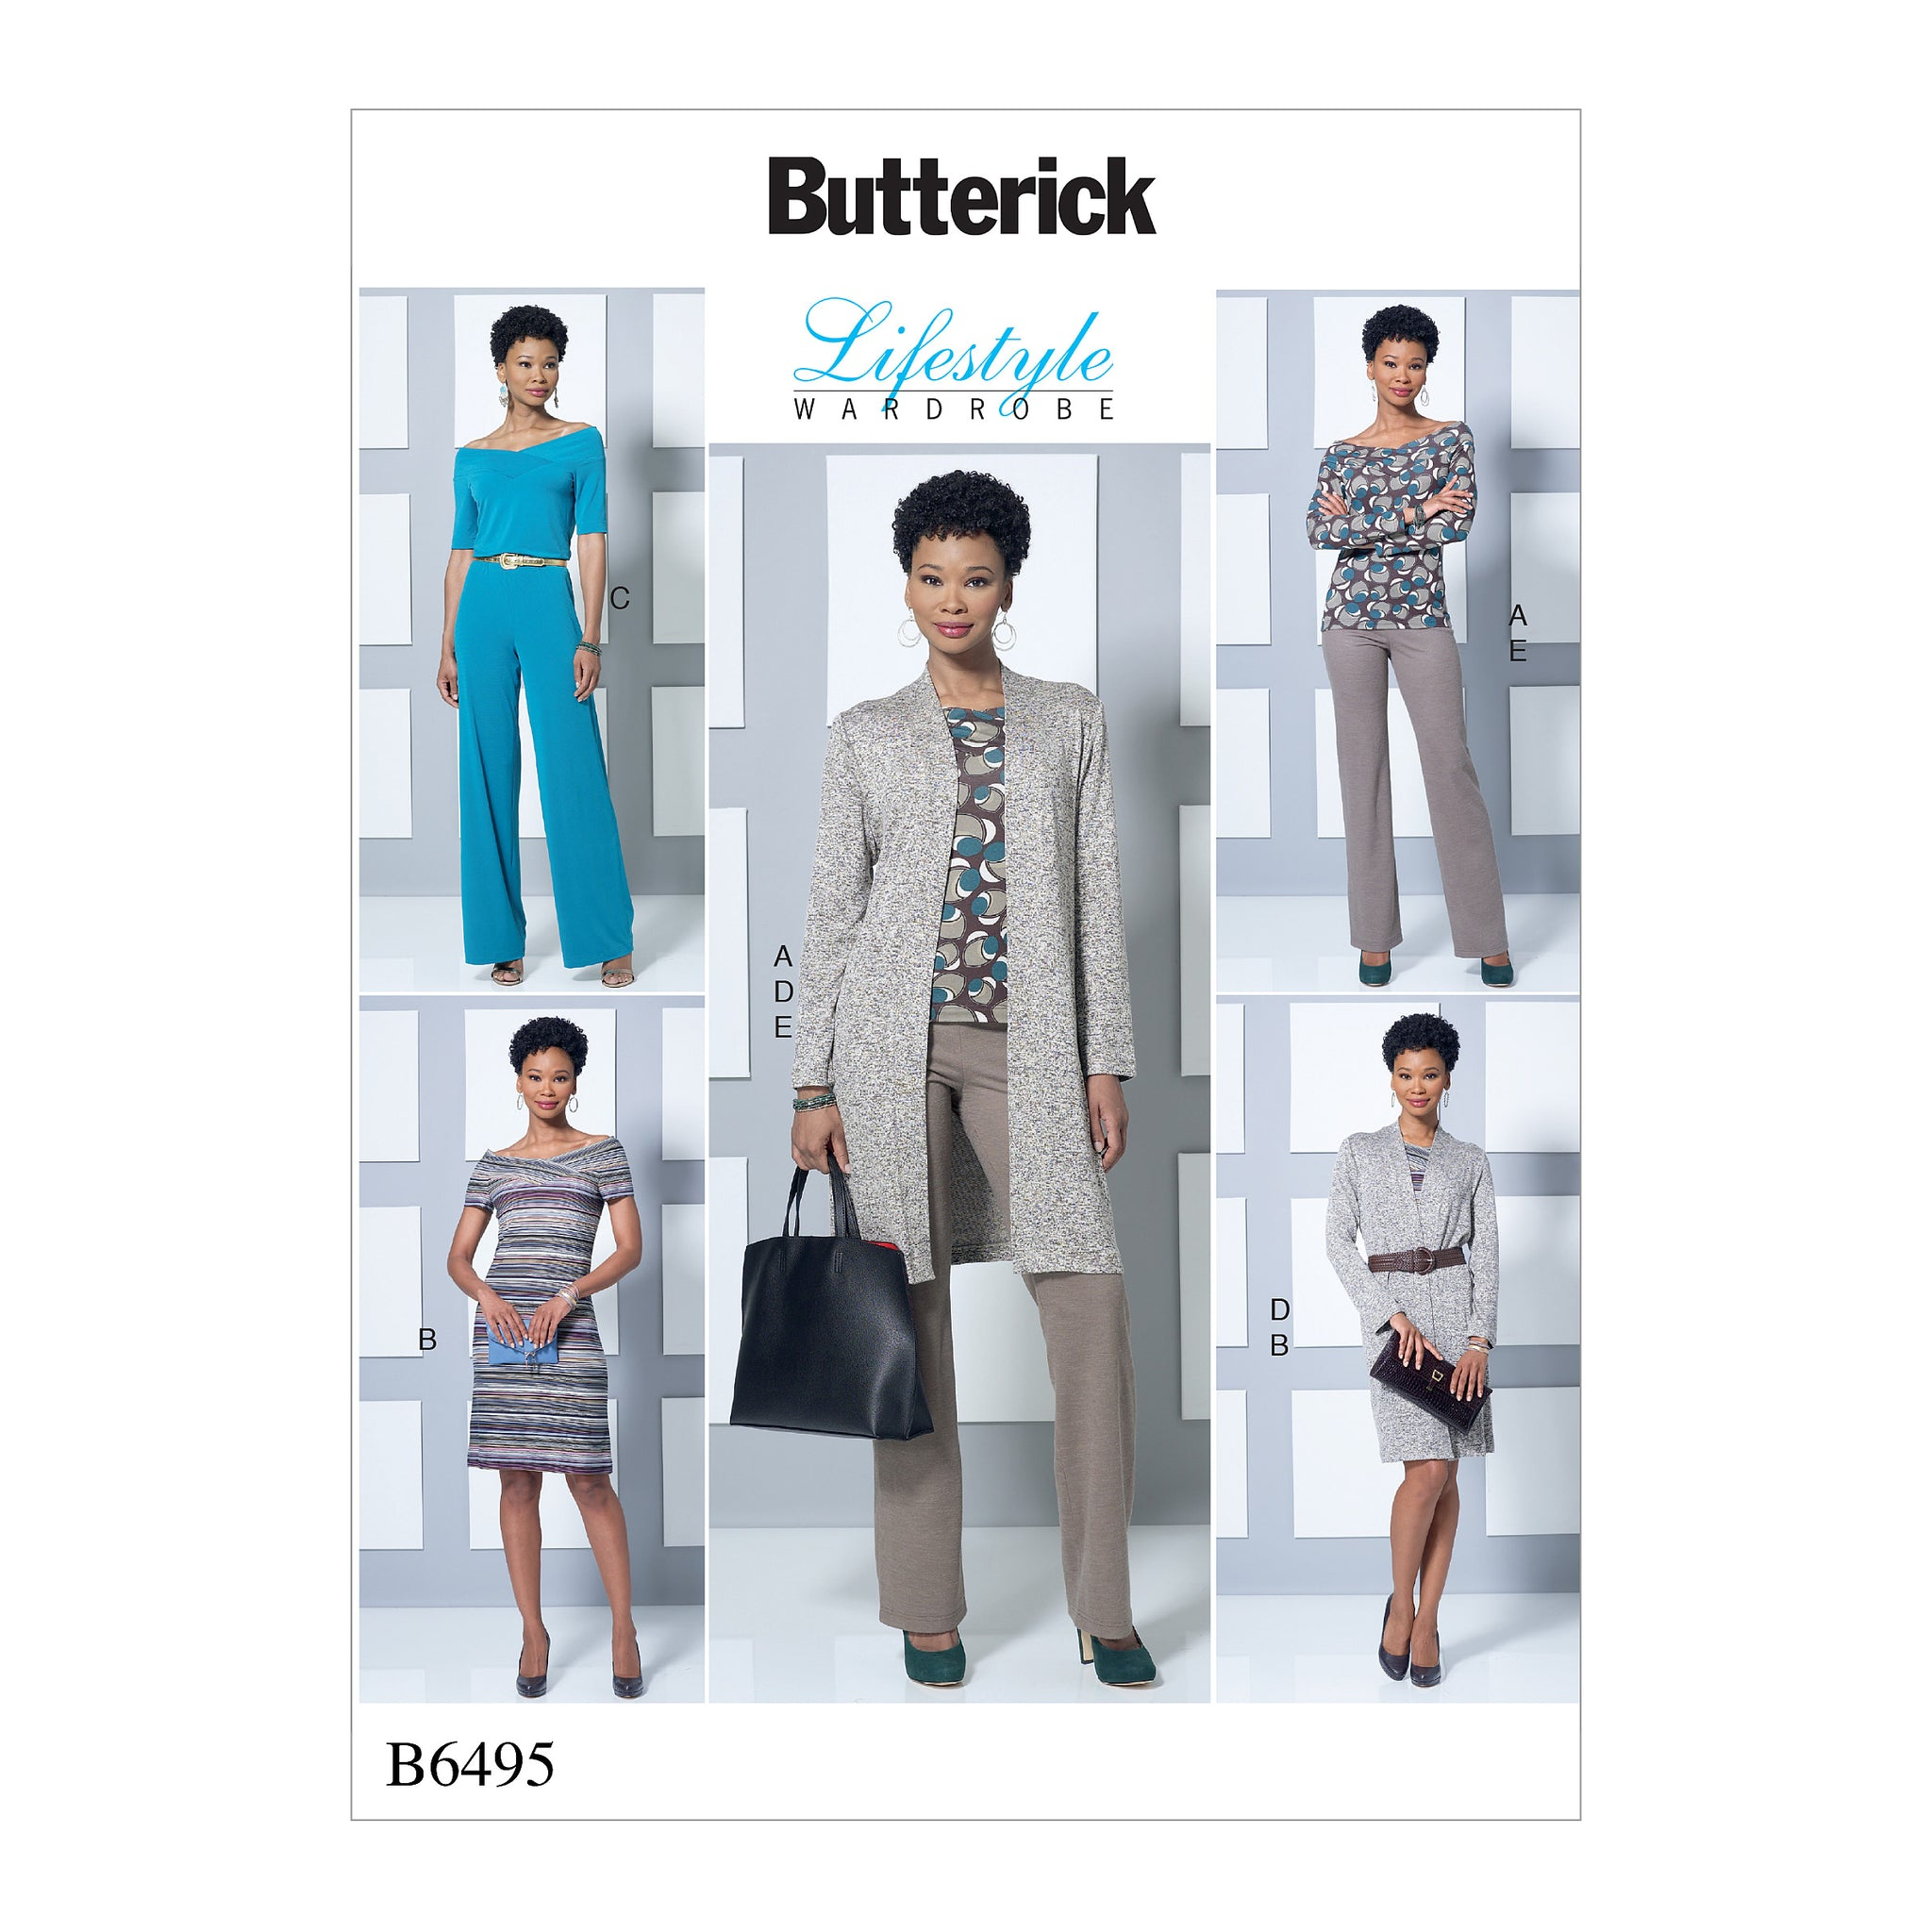 Butterick B64950Y0 Misses' Knit Off-the-Shoulder Top, Dress and Jumpsuit, Loose Jacket, and Pull-On Pants XS-S-M